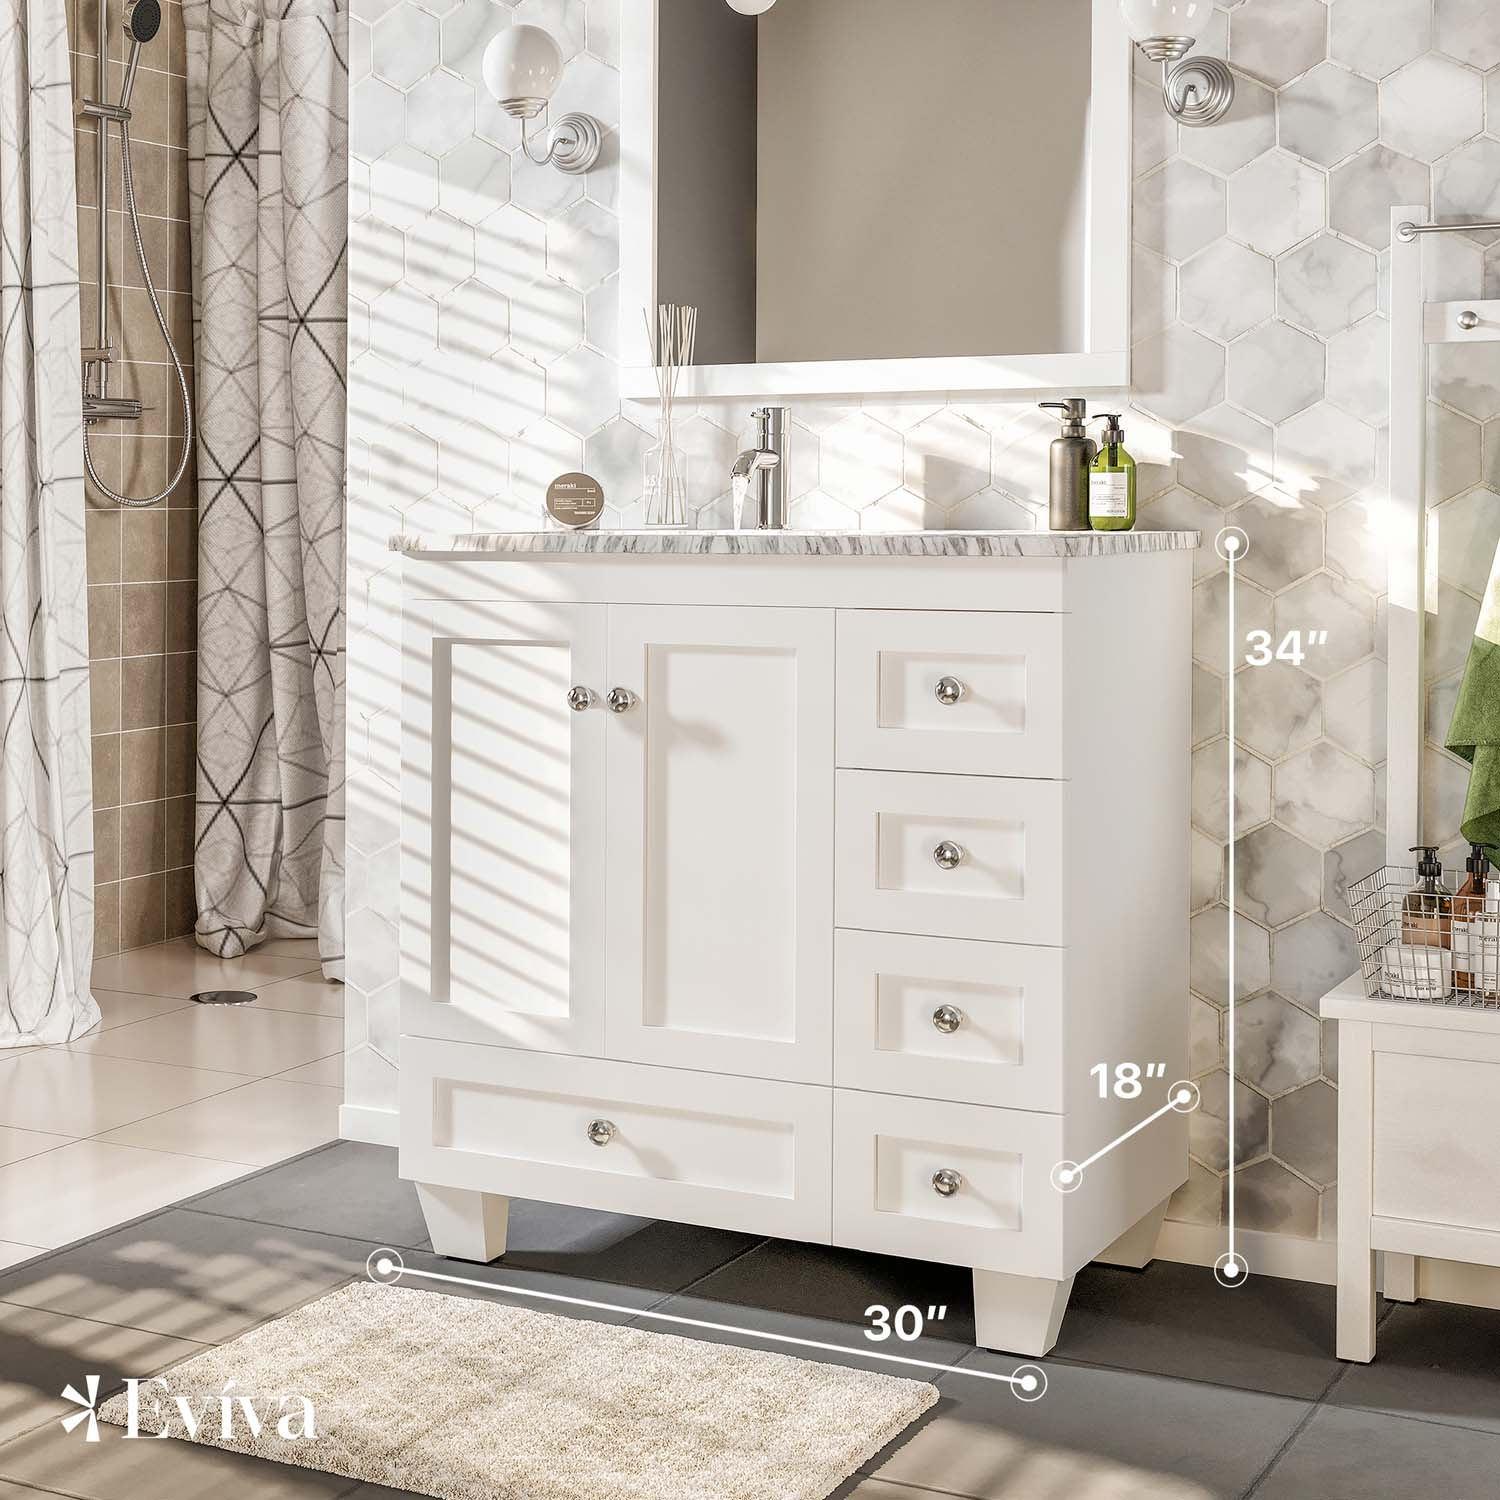 Eviva Happy 30 X 18 Transitional White Bathroom Vanity With White Carrera Marble Counter Top